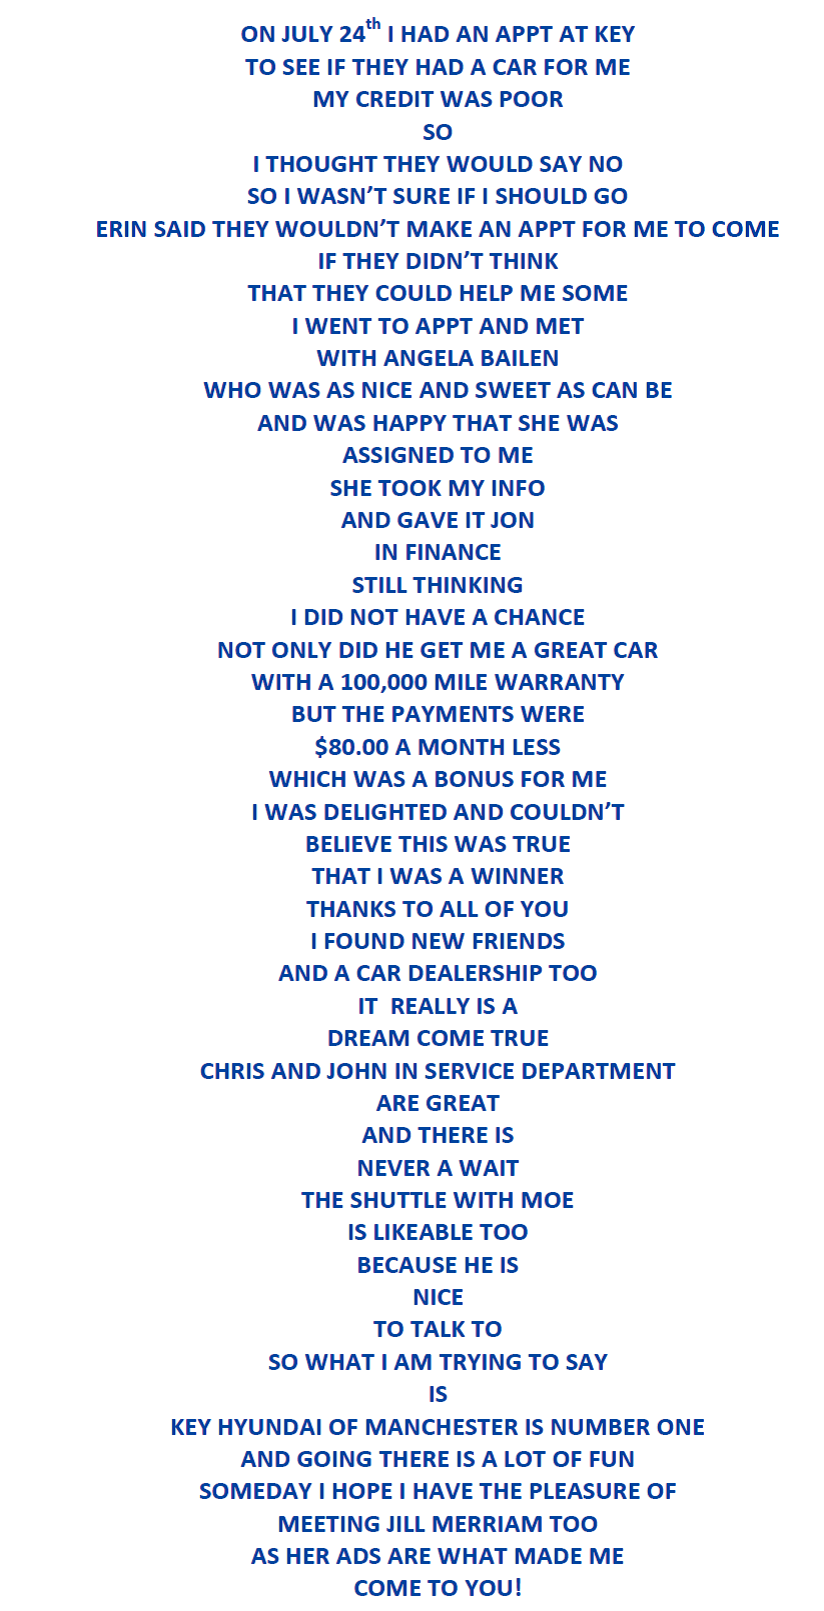 A Poem About Key Hyundai Of Manchester!